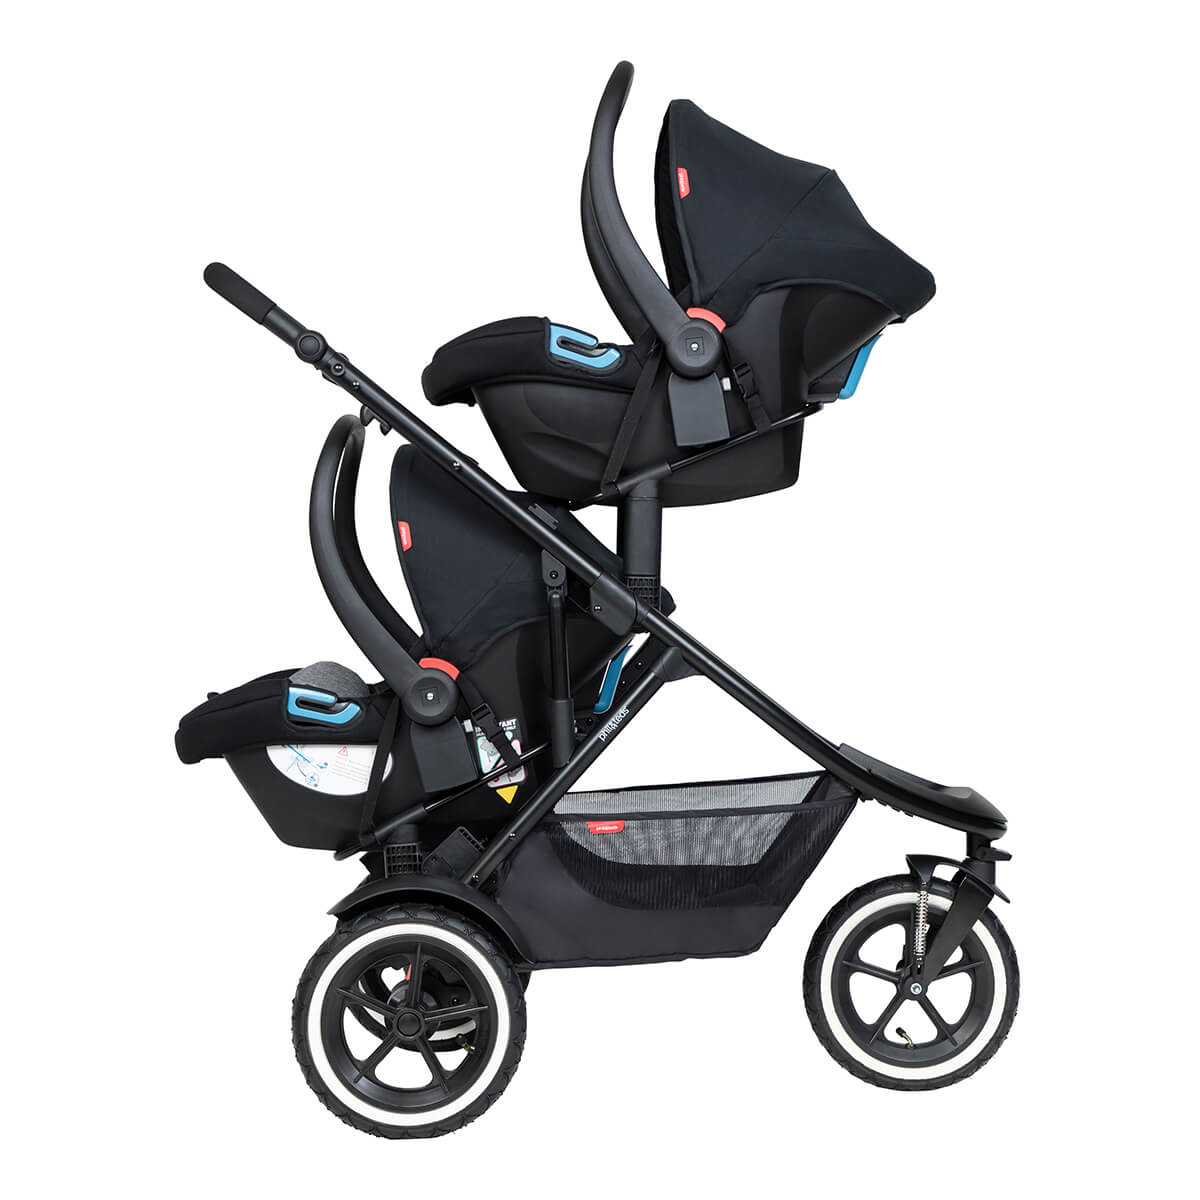 https://cdn.accentuate.io/4343443488802/19437754220722/philteds-sport-buggy-with-double-alpha-travel-system-v1626482672053.jpg?1200x1200